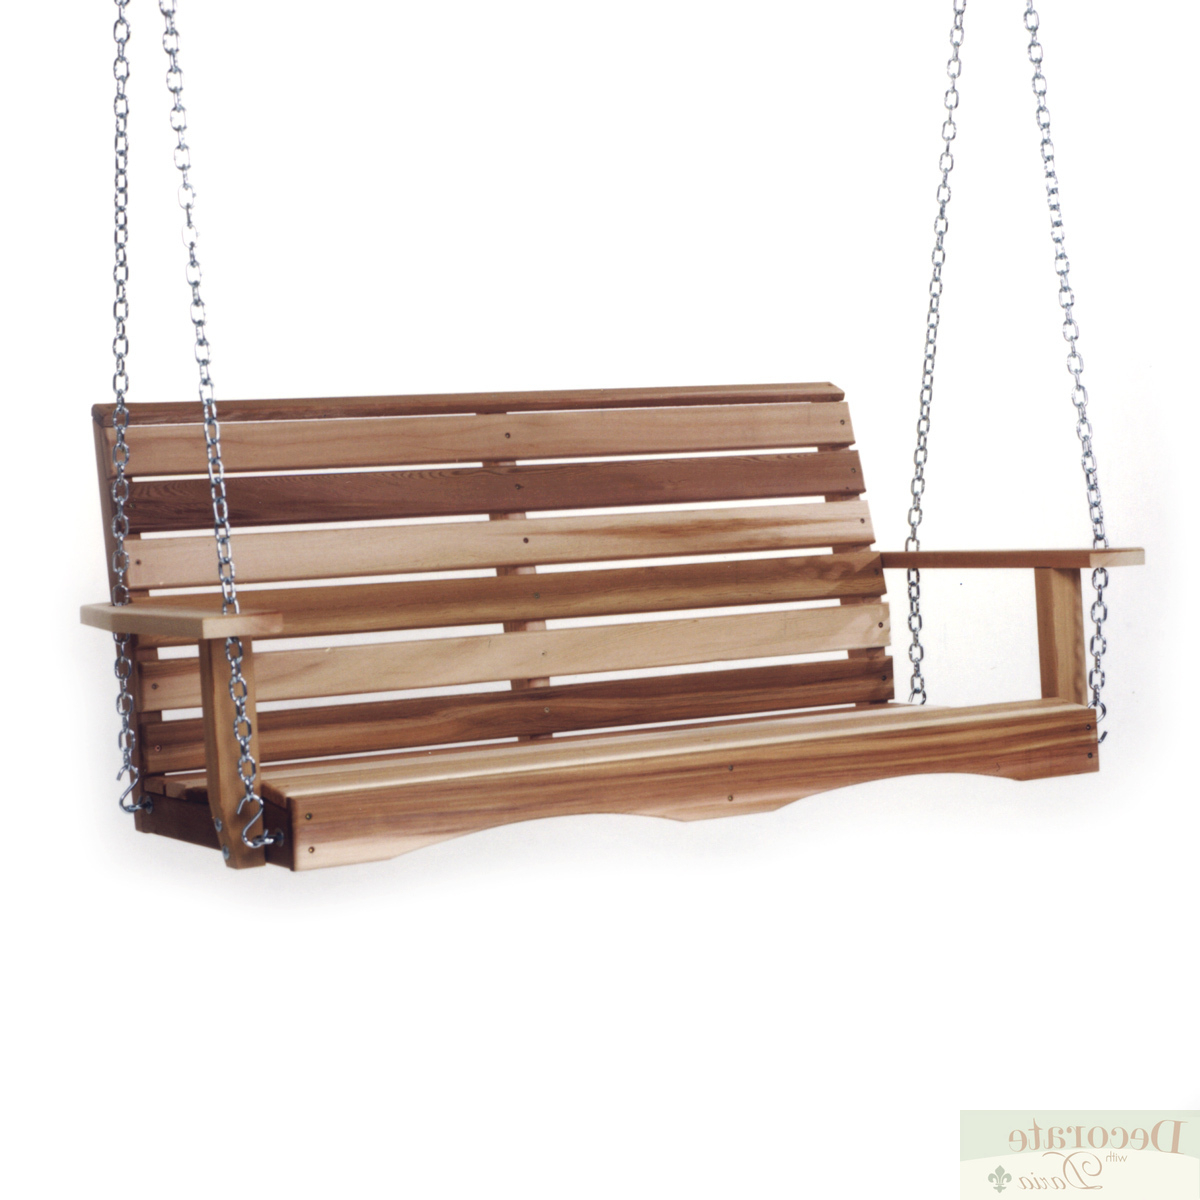 Fashionable Details About Porch Swing 4 Ft Red Cedar Crafted W/mounting Chain Kit Contoured Back Slats New For Porch Swings With Chain (View 6 of 26)